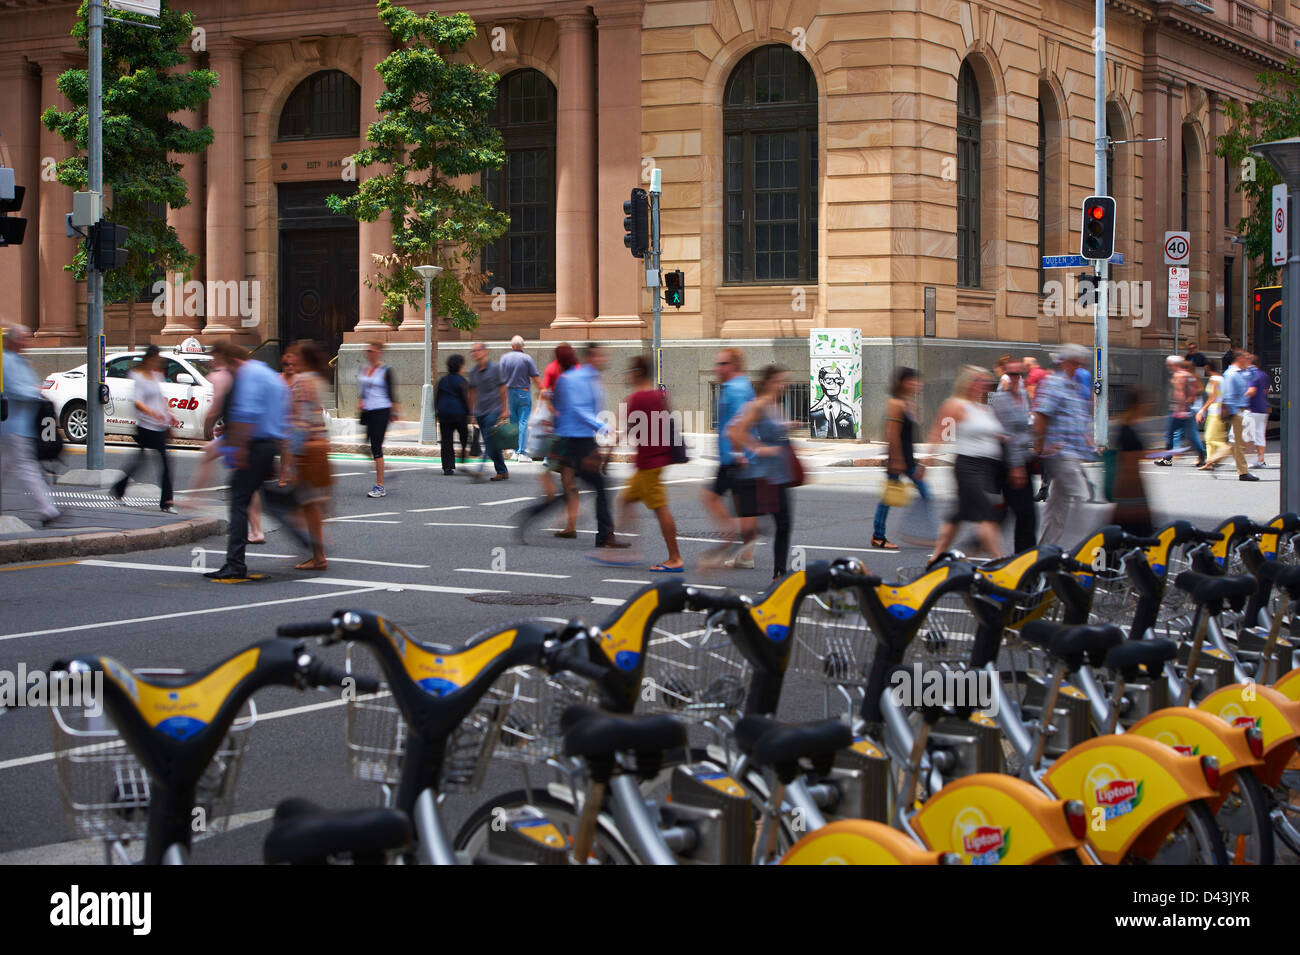 Brisbane city pedestrians & traffic - Stock Image